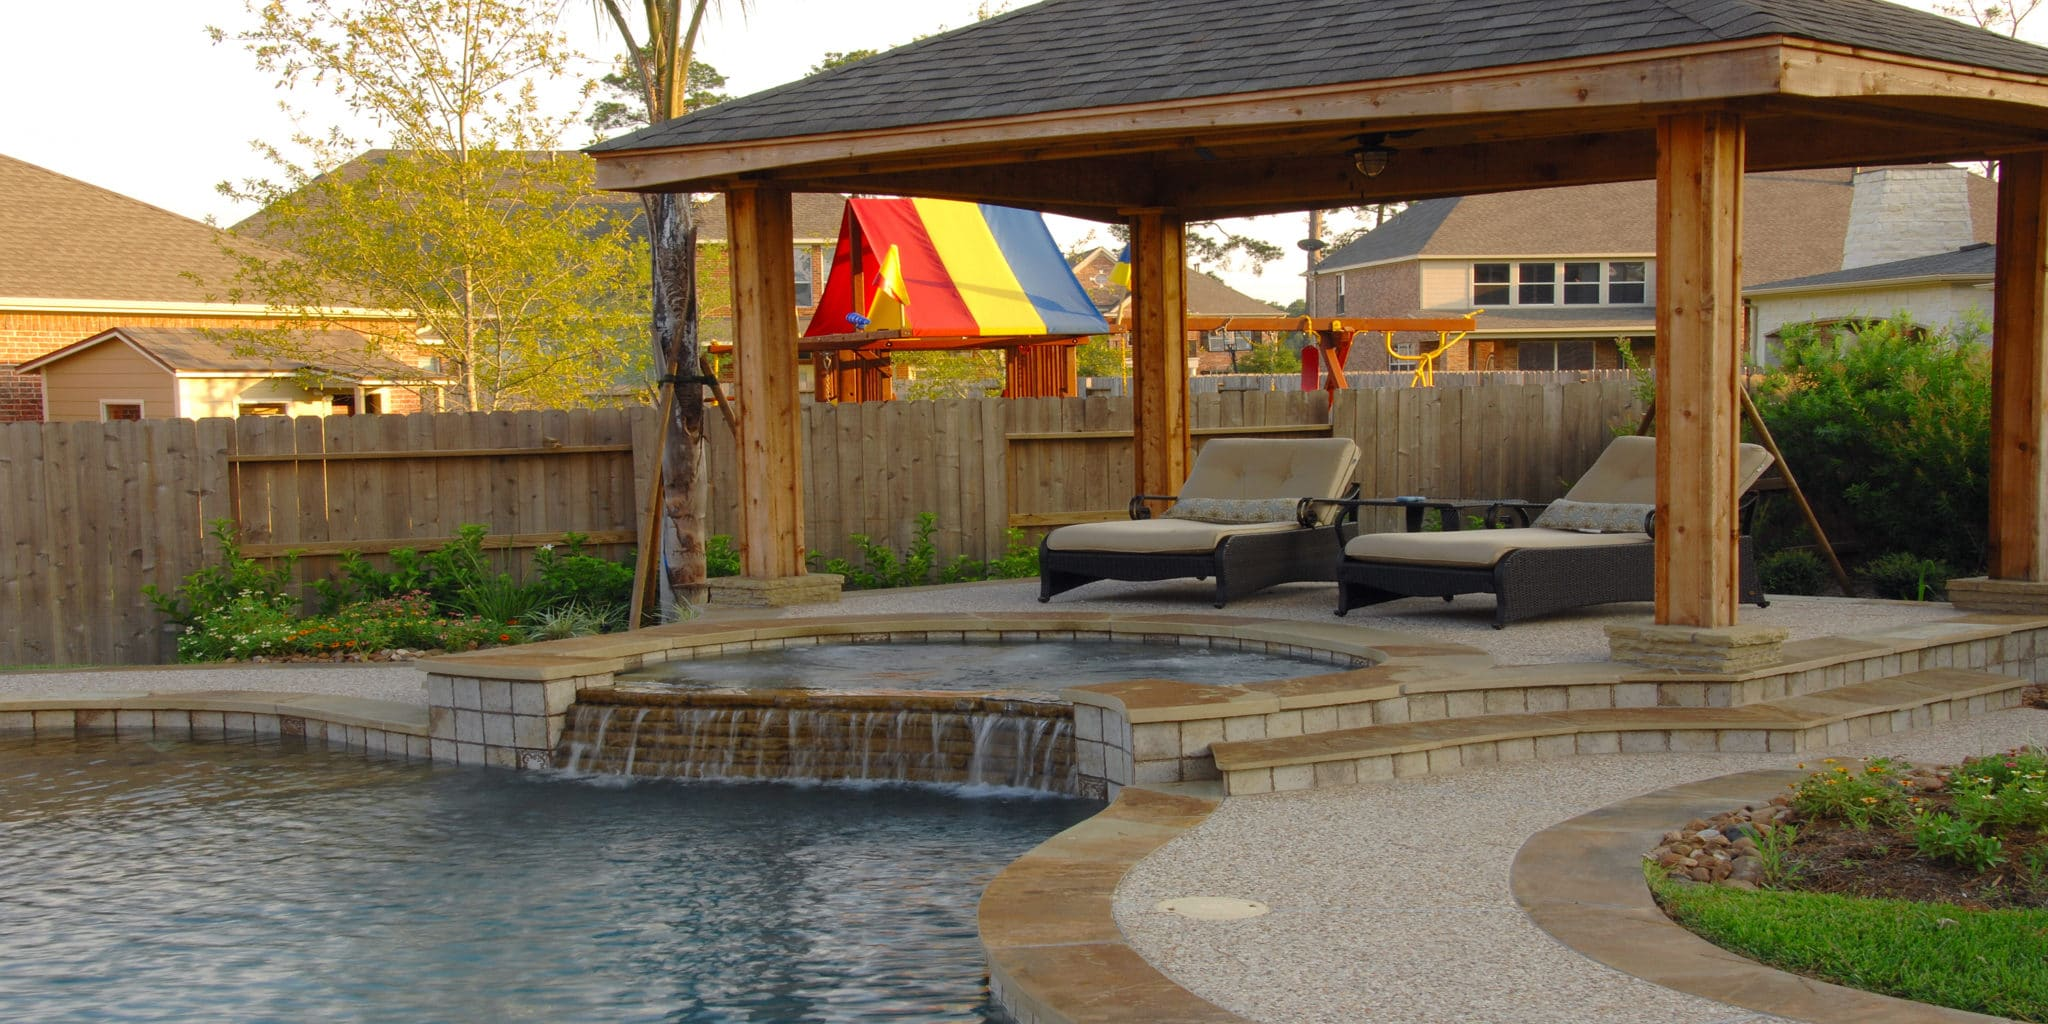 Patio Pavers Houston : Patios patio pavers downunda pools houston